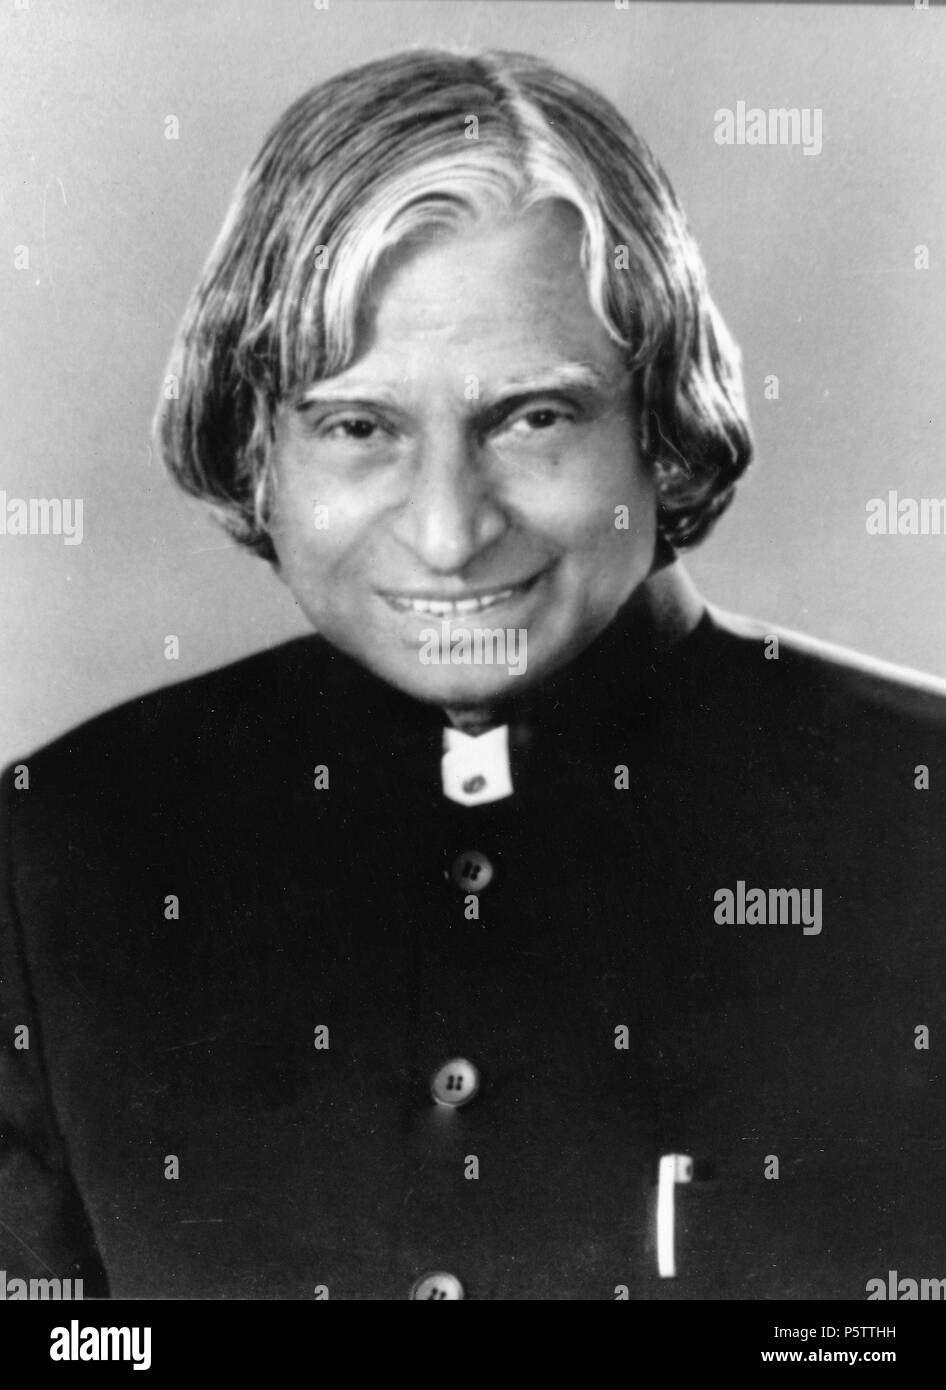 APJ - Avul Pakir Jainulabdeen Abdul Kalam an Indian scientist who served as the 11th President of India from 2002 to 2007. - Stock Image